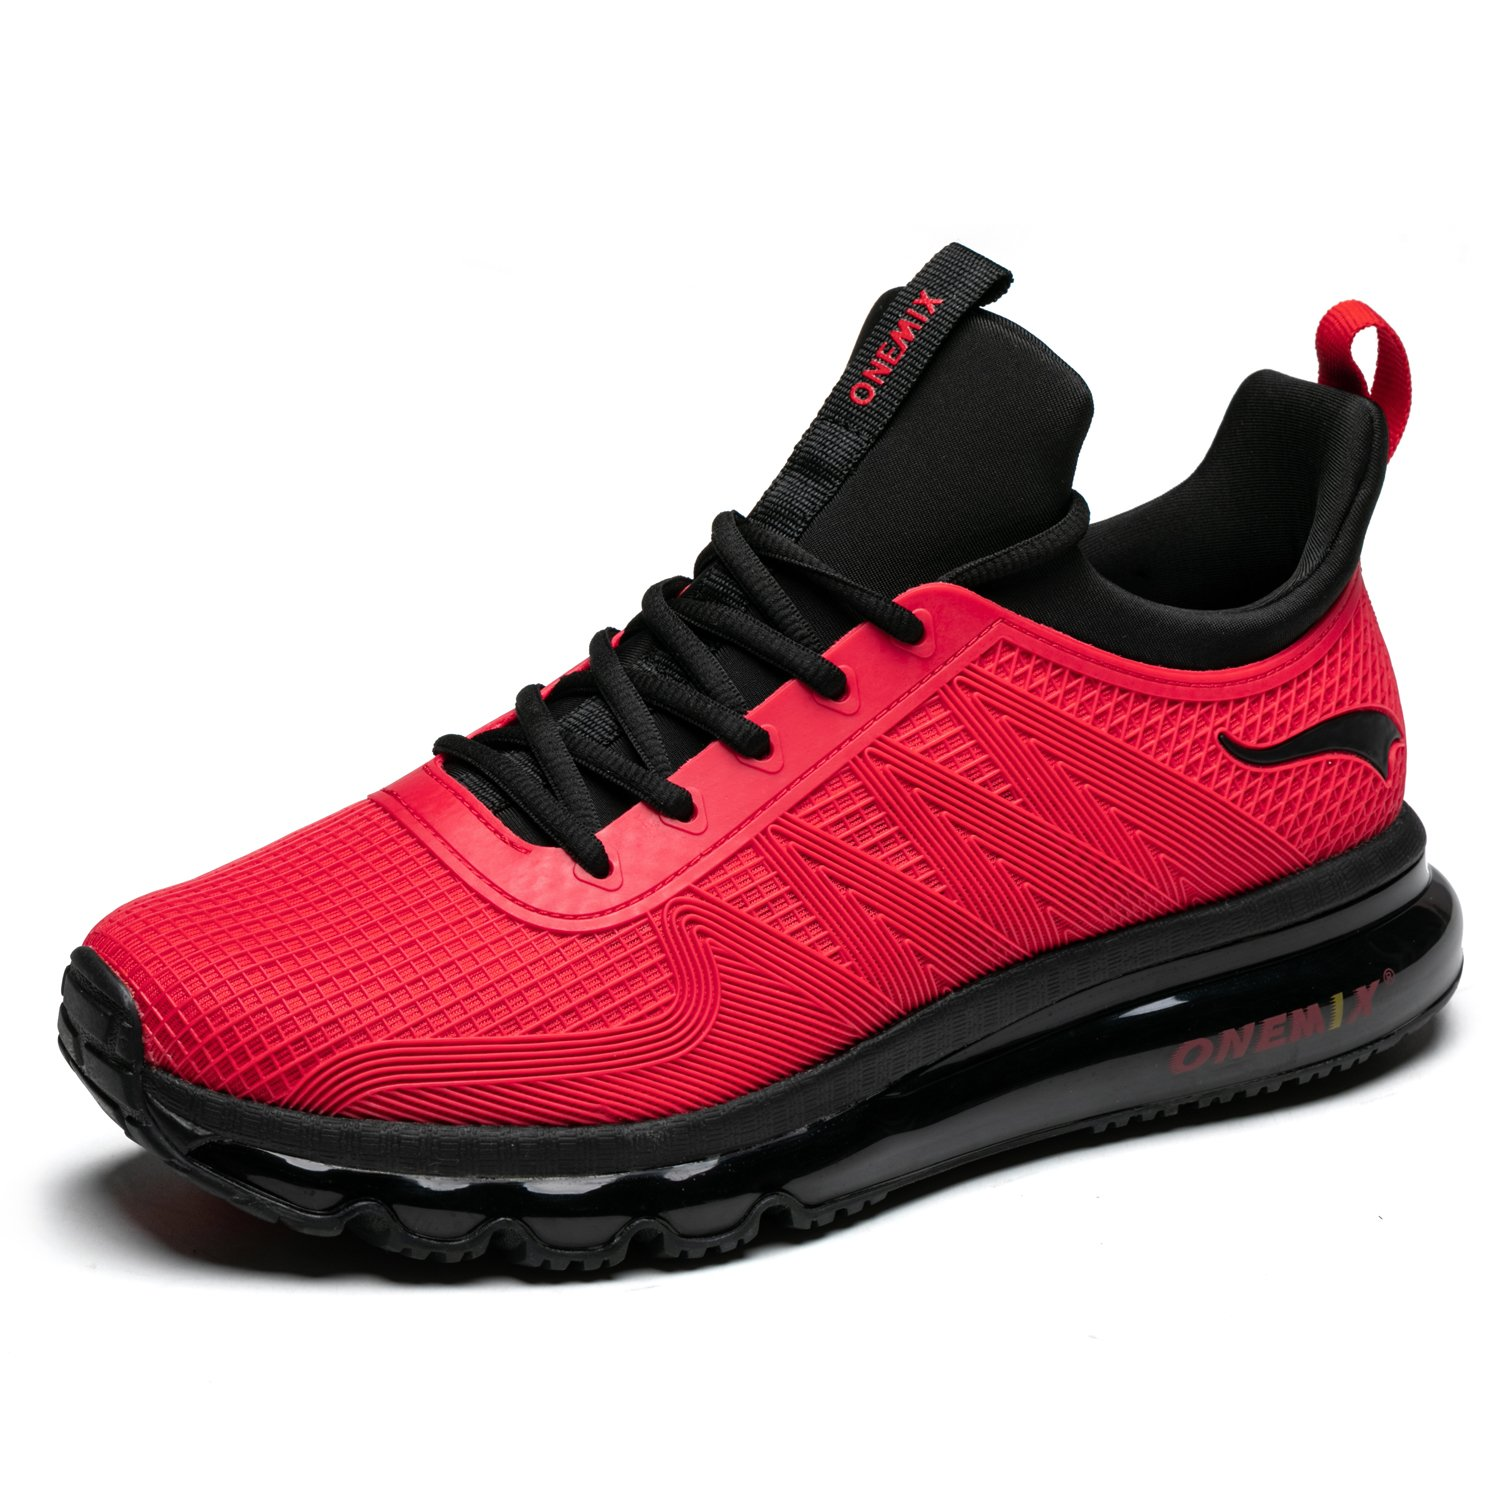 ONEMIX Running Shoes Breathable Air Cushion Sports Shoes Lightweight Outdoor Sneakers for Men and Women B07DZL1MZ9 Men 8.0D(M)US=10.23inch|Red